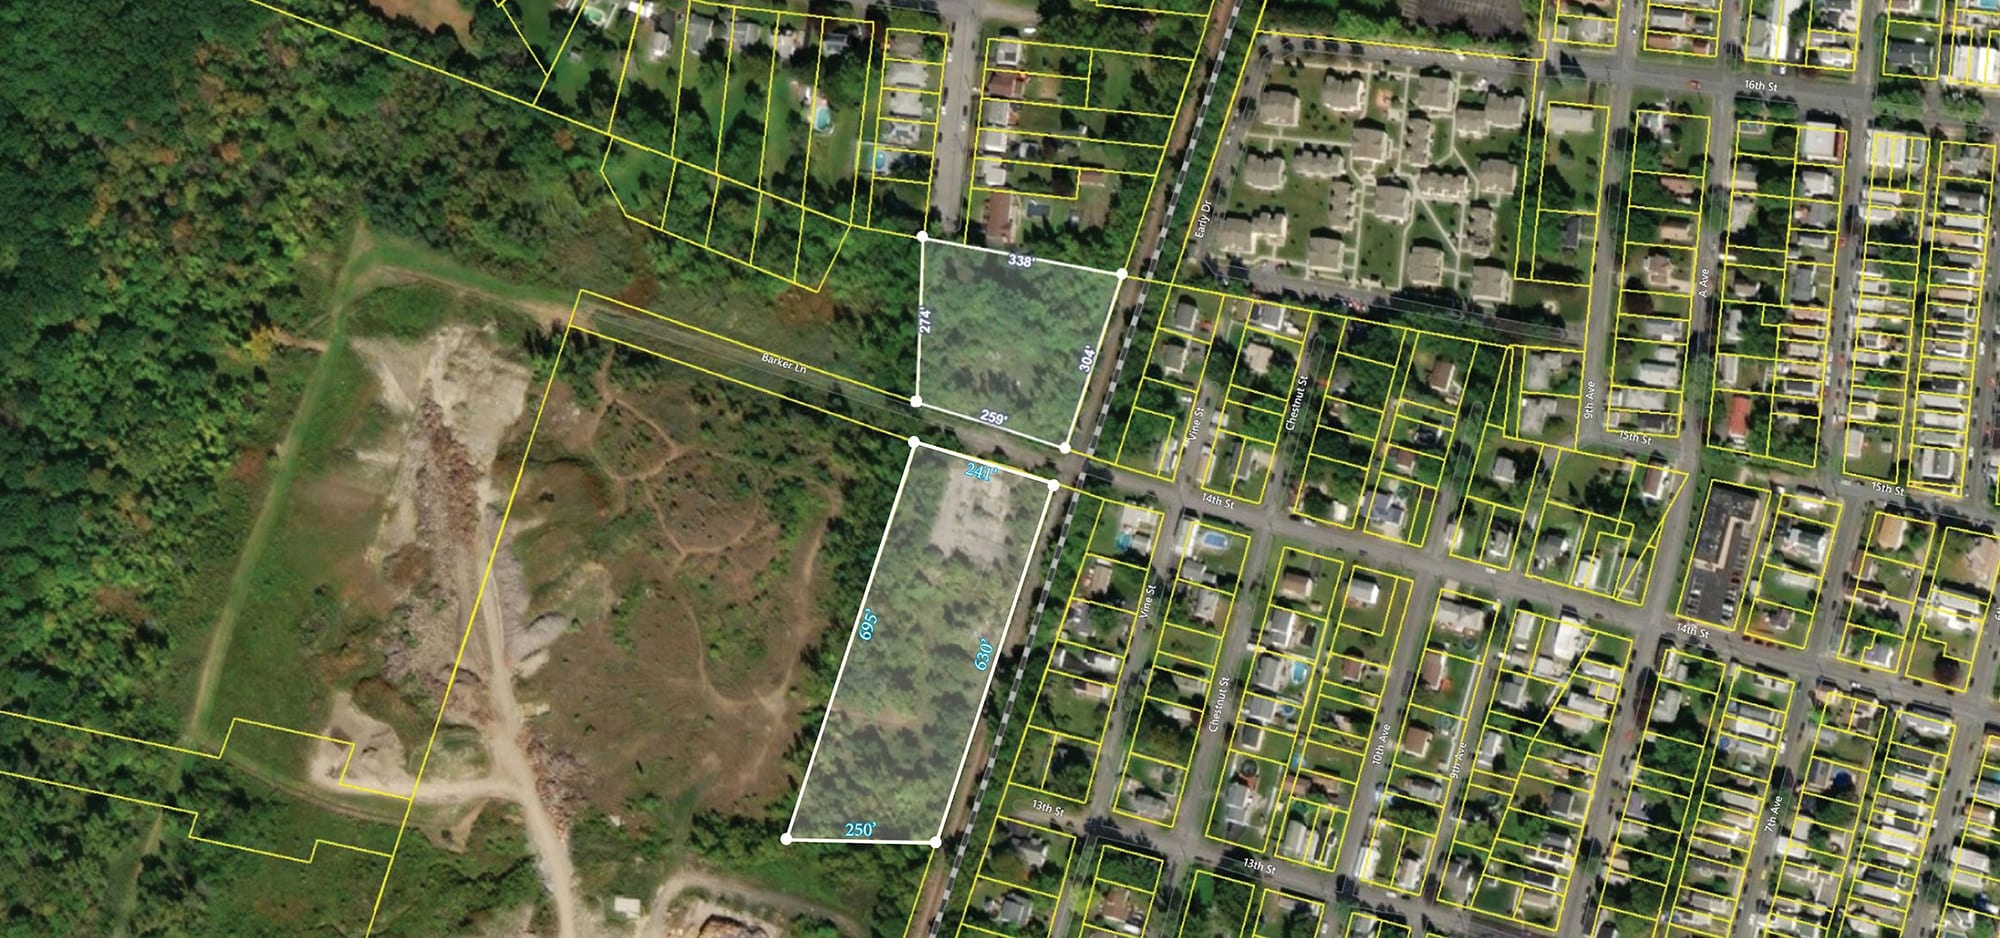 Aerial View of 1021 and 1024 Barker La, Watervliet NY 12189